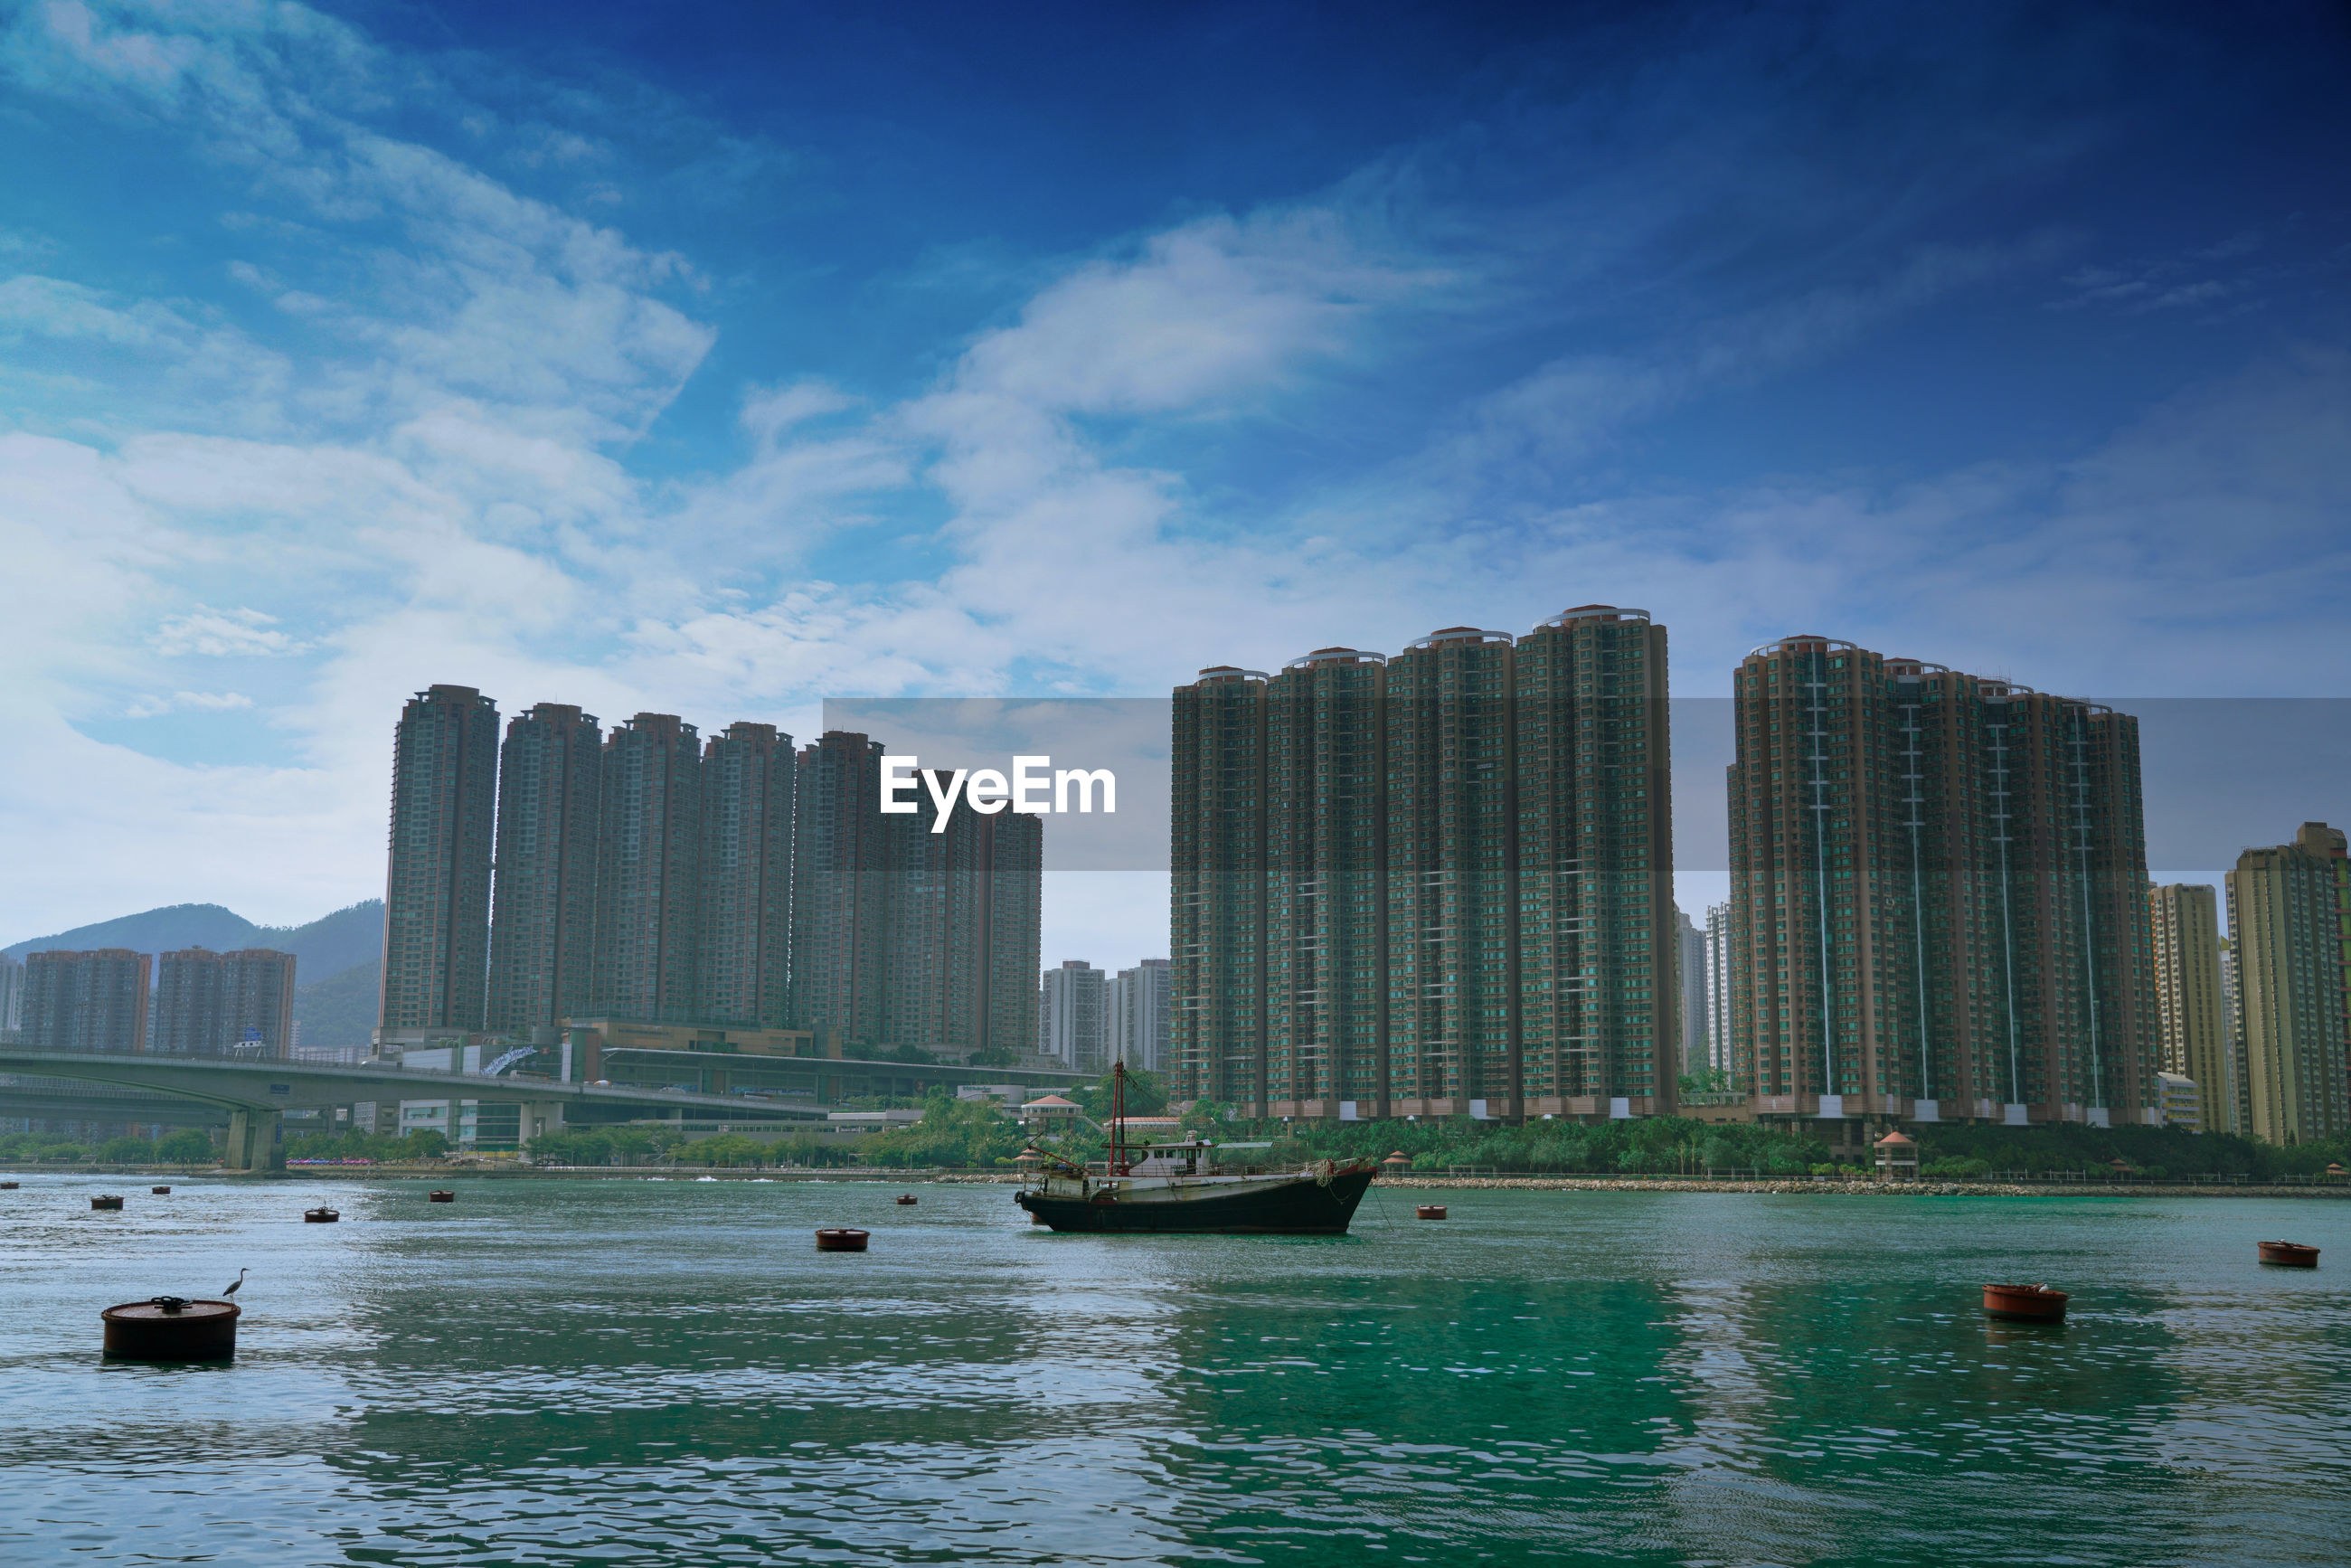 BOATS IN SEA BY BUILDINGS AGAINST SKY IN CITY